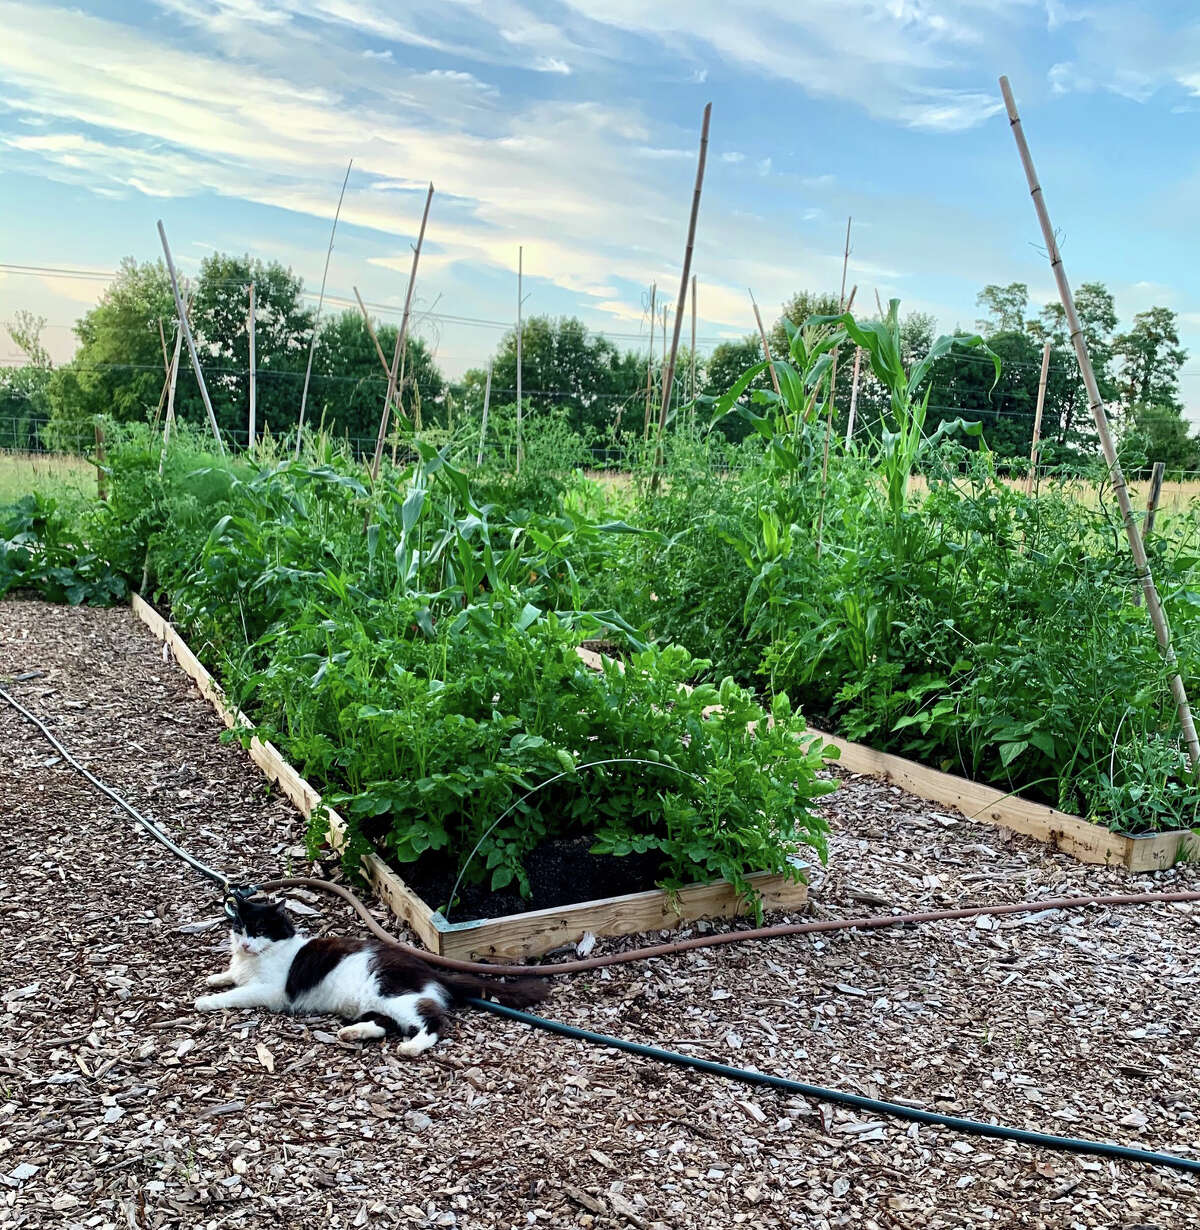 Farm cat Chauncey relaxes at Mara Tyler's vegetable plot in Oxford, Pa. The garden, created in spring as a response to the pandemic, continues to provide produce for Tyler and her family as well as co-gardener Matthew Ross.